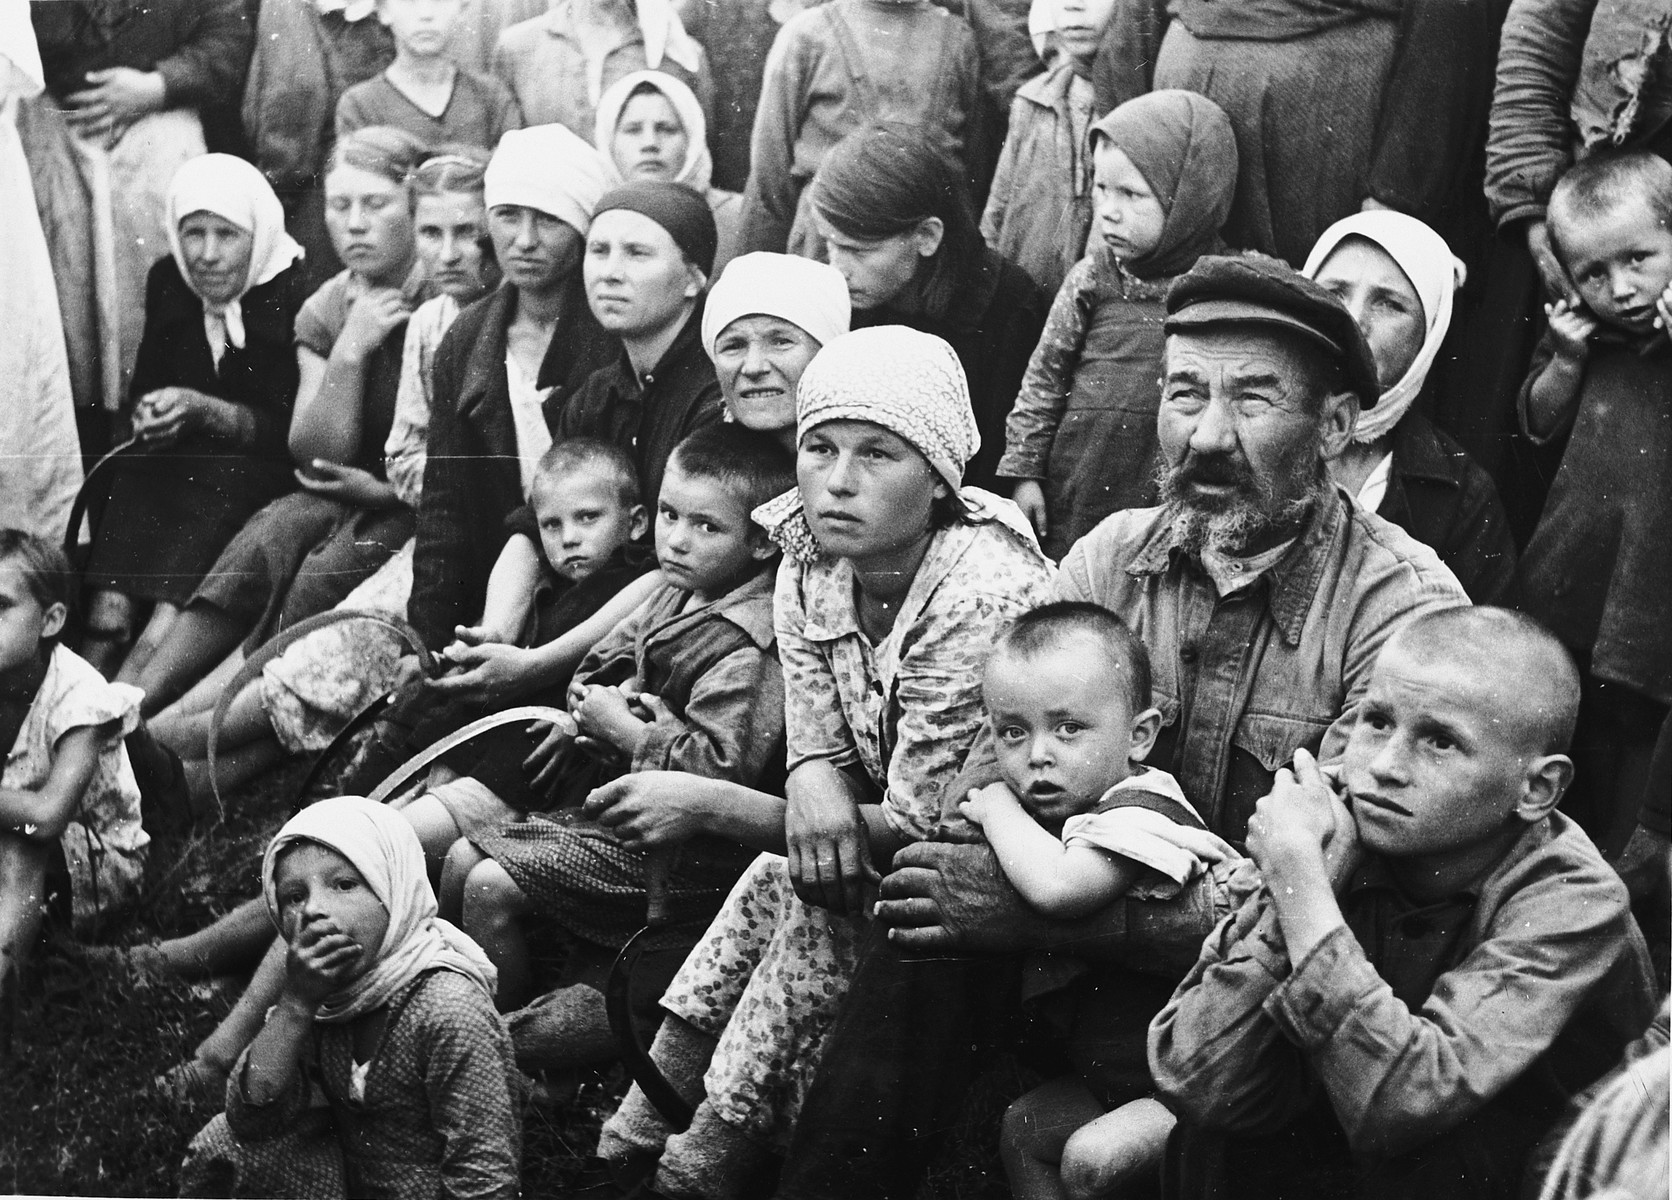 A large crowd composed mainly of Russian farmers. women and young children huddle together attentively on the ground in an unidentified location.